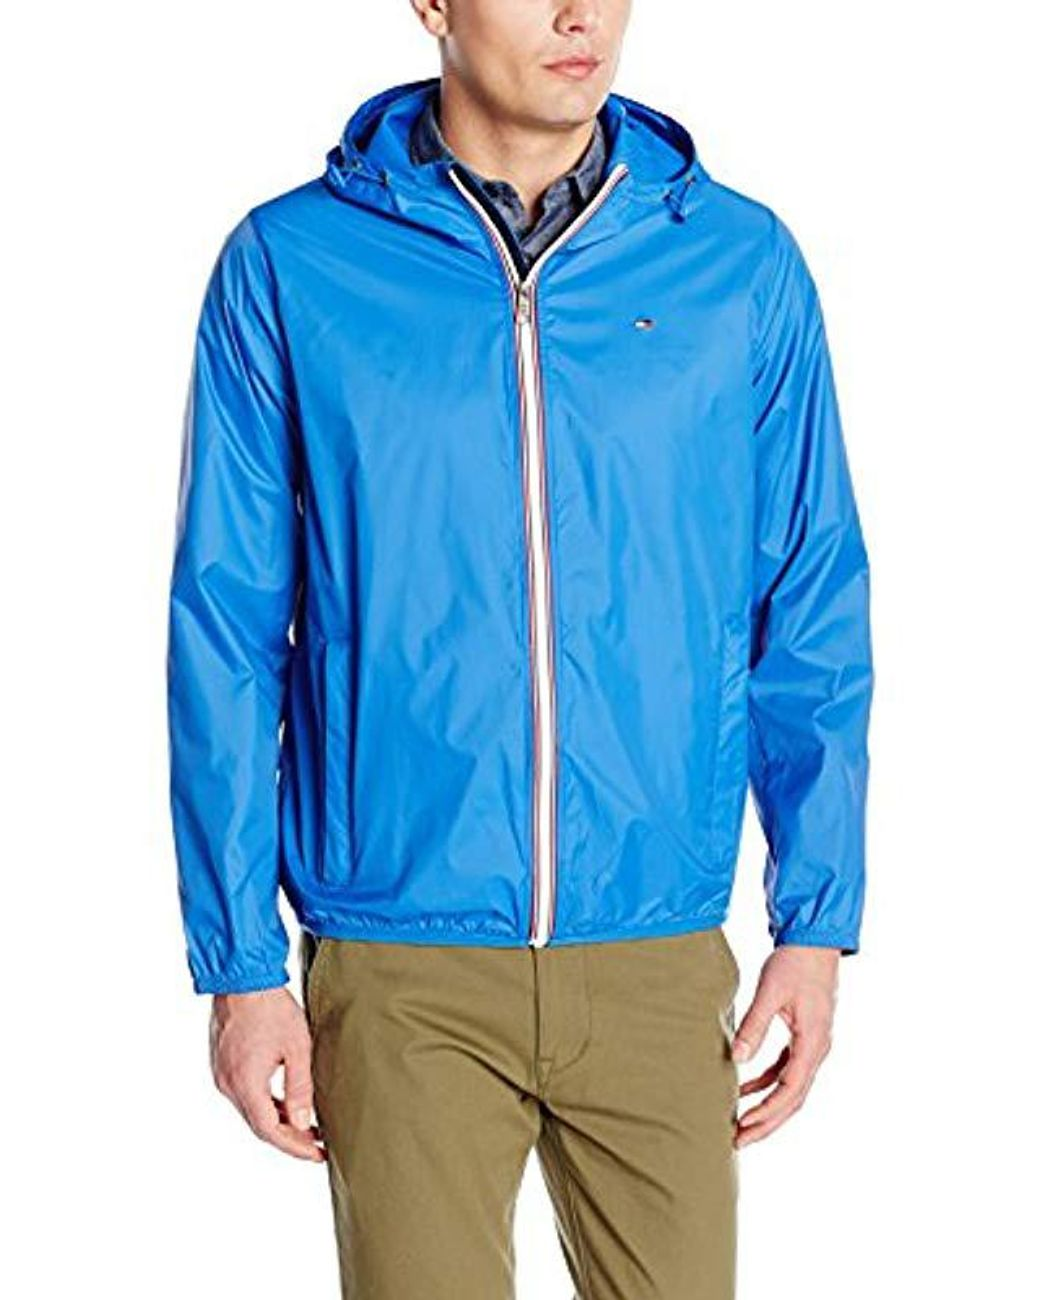 order online outlet store sale fresh styles Tommy Hilfiger Synthetic Lightweight Hooded Packable ...